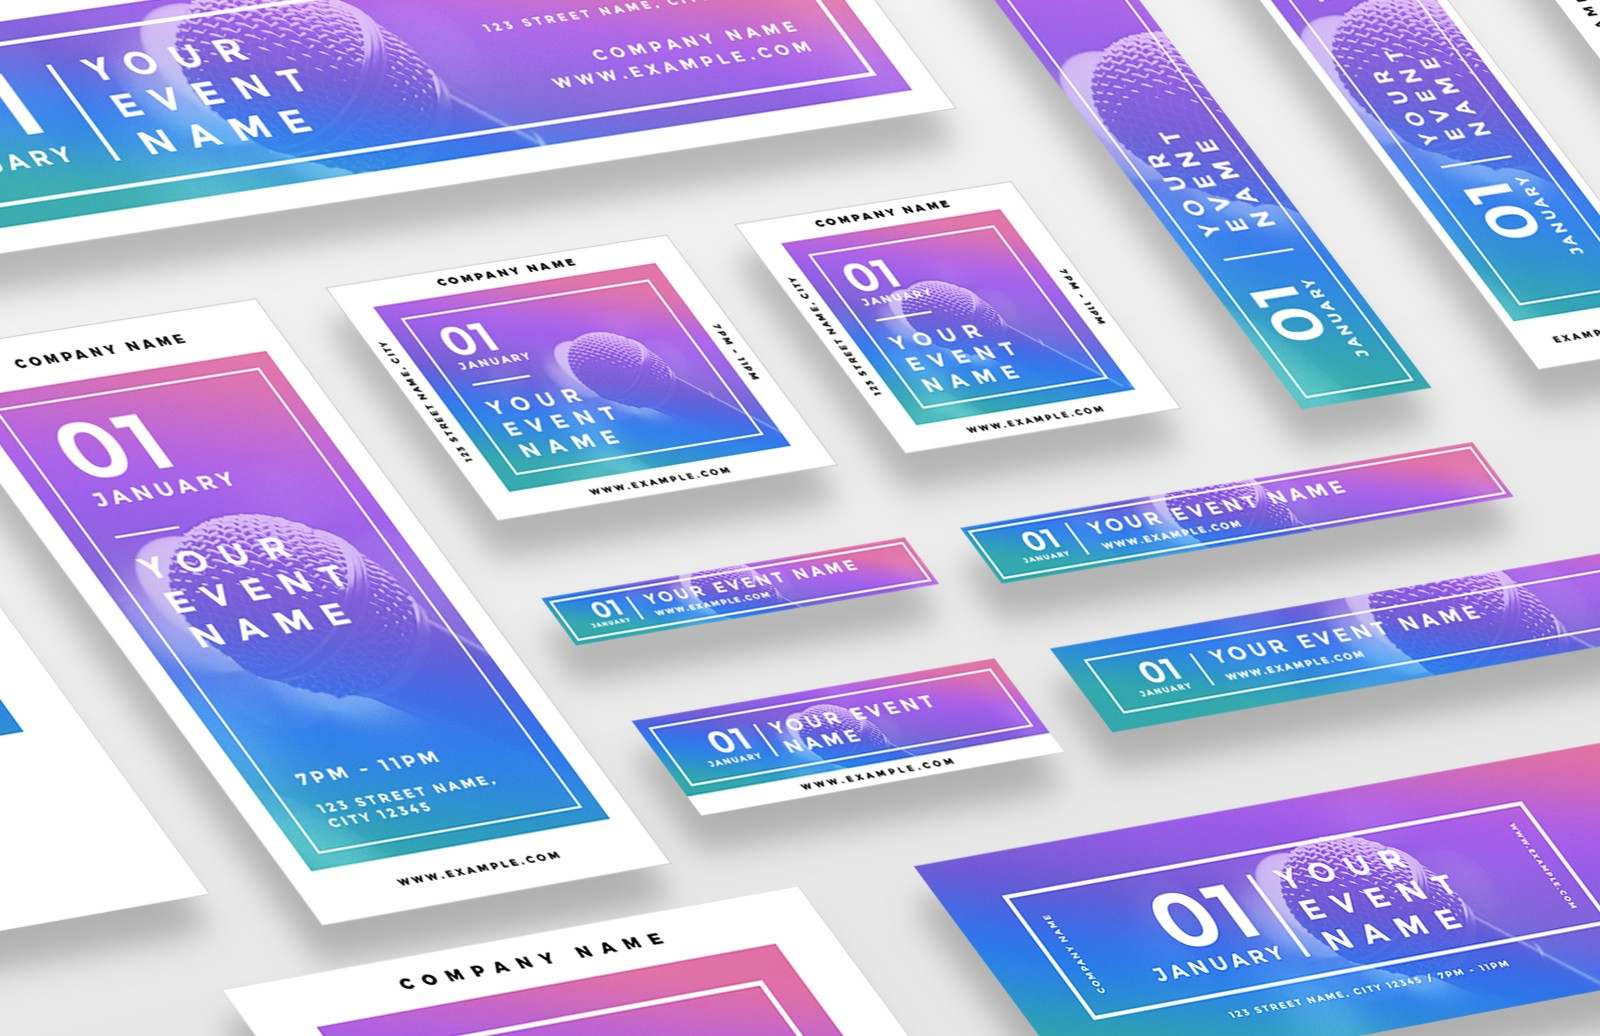 Colourful Web Banners & Social Media Pack